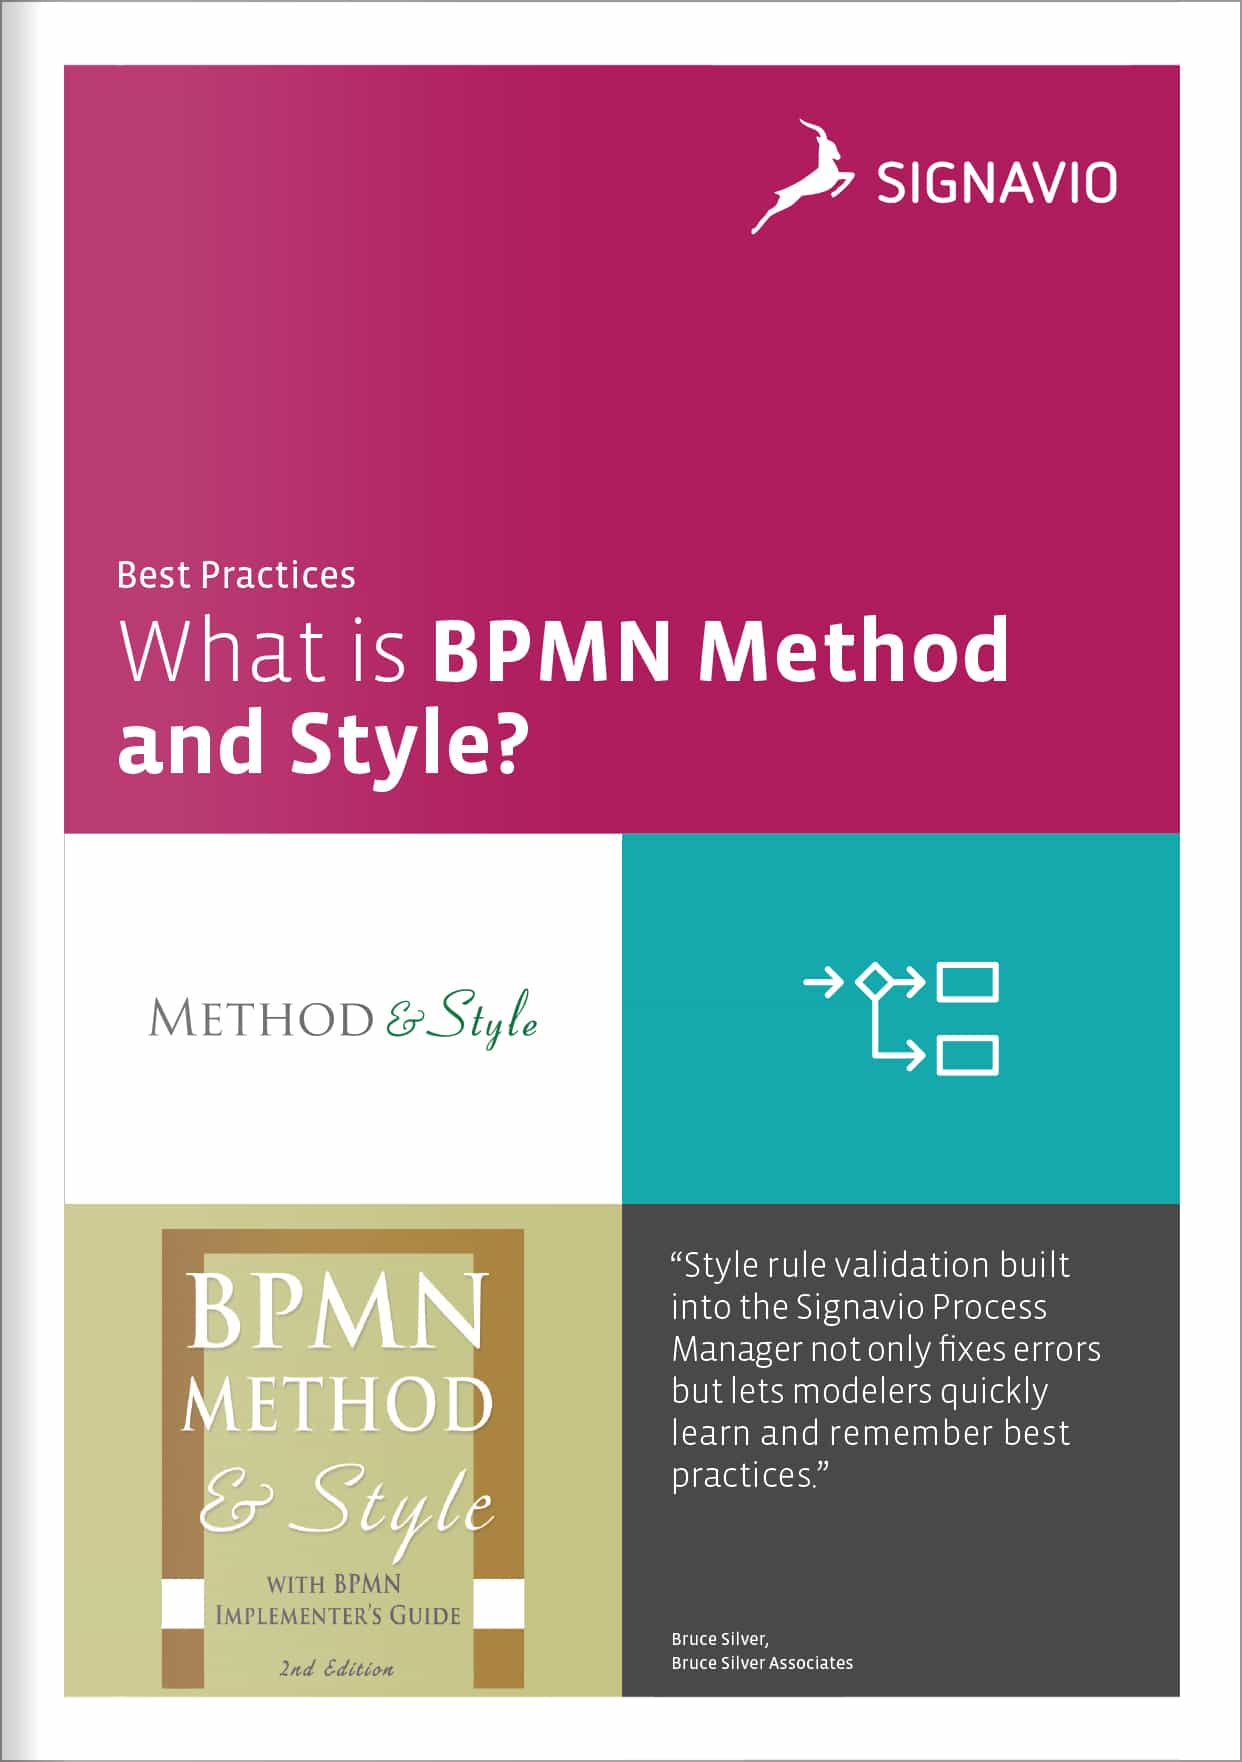 bpmn-method-and-style-cover